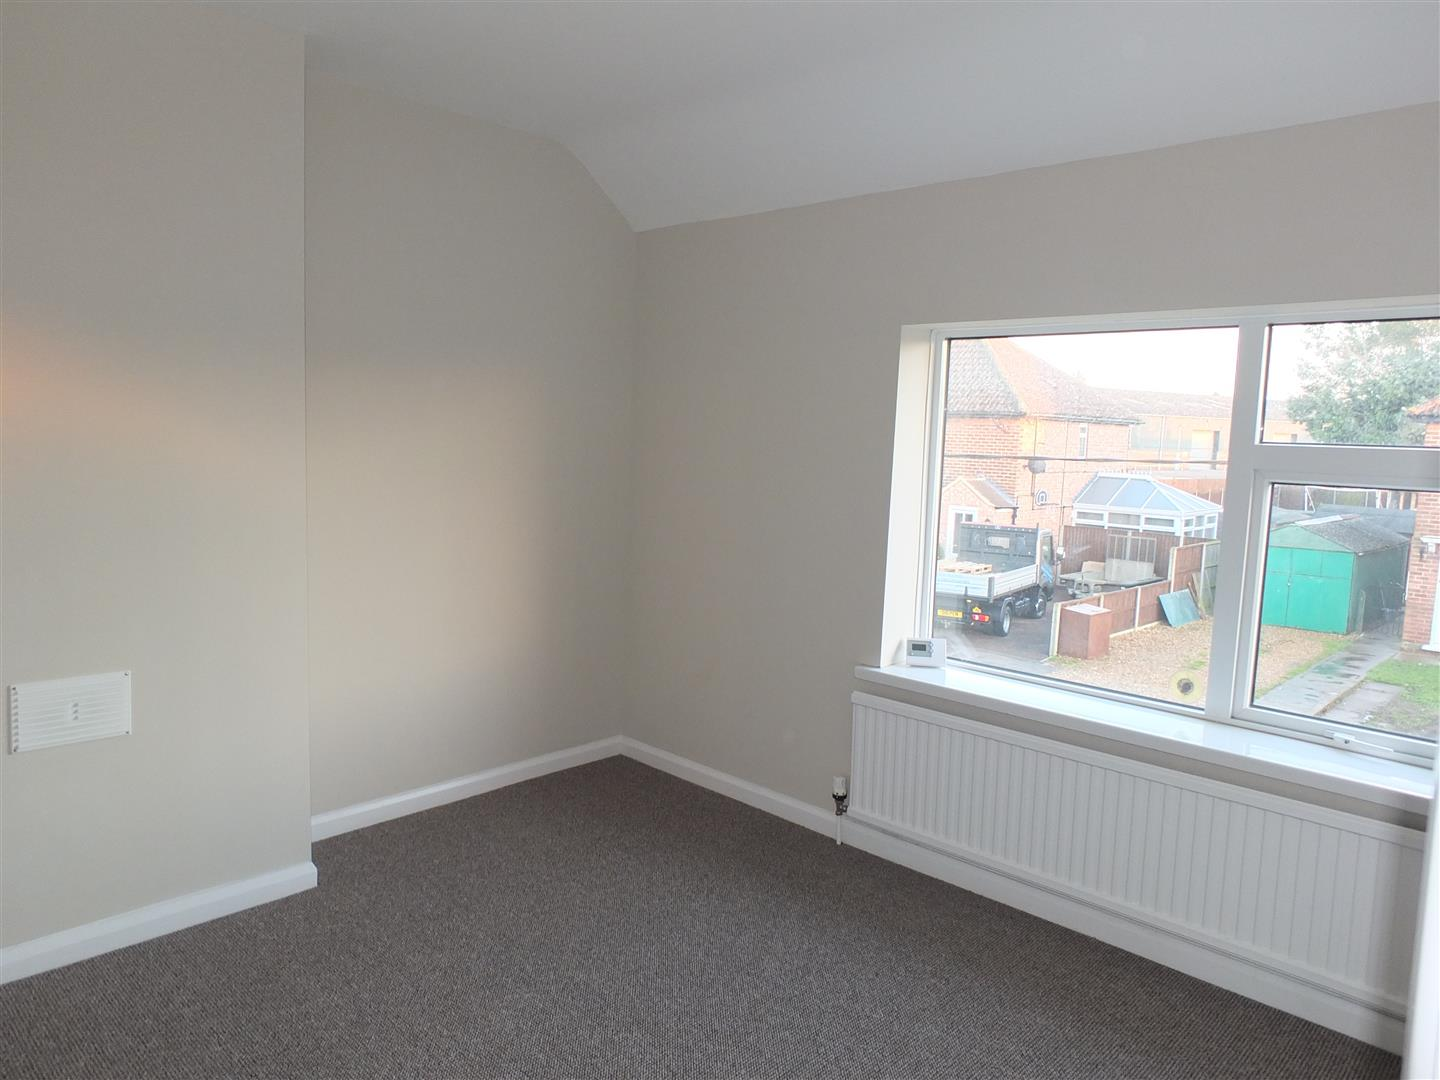 3 bed semi-detached house to rent in Long Sutton Spalding, PE12 9BT  - Property Image 5